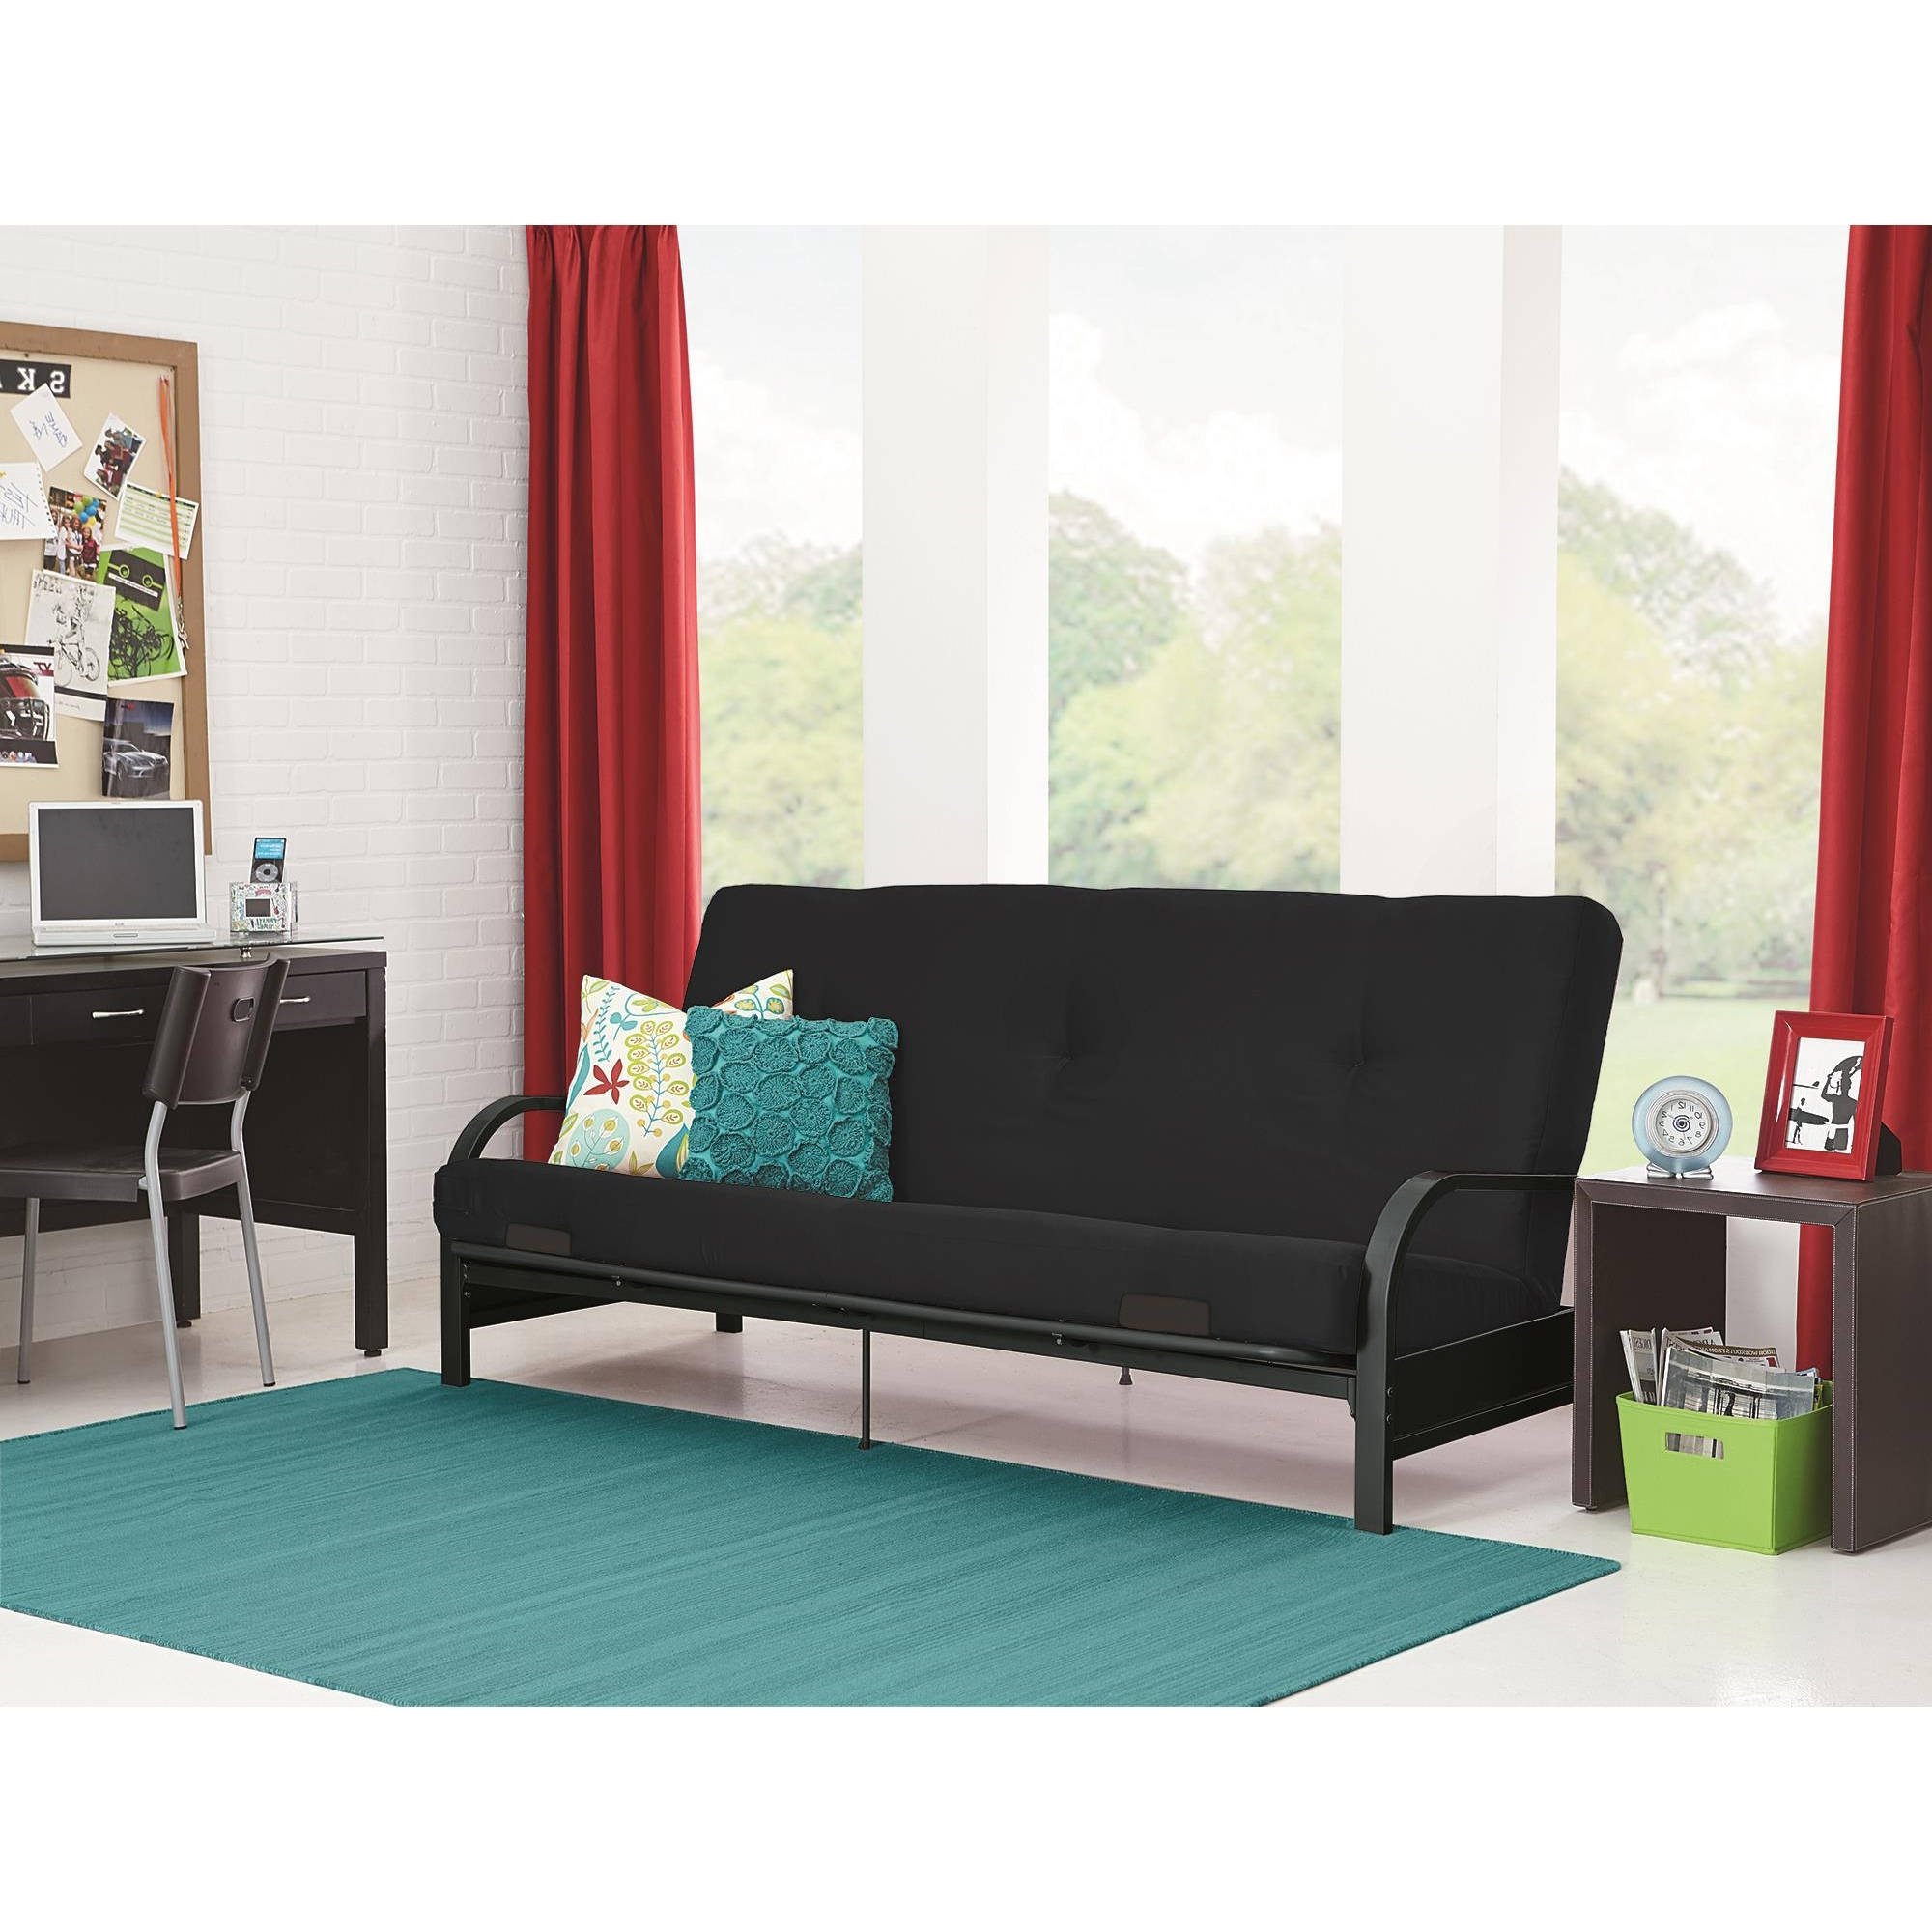 Best And Newest Bedroom Sofas And Chairs With Futons – Walmart (View 9 of 20)